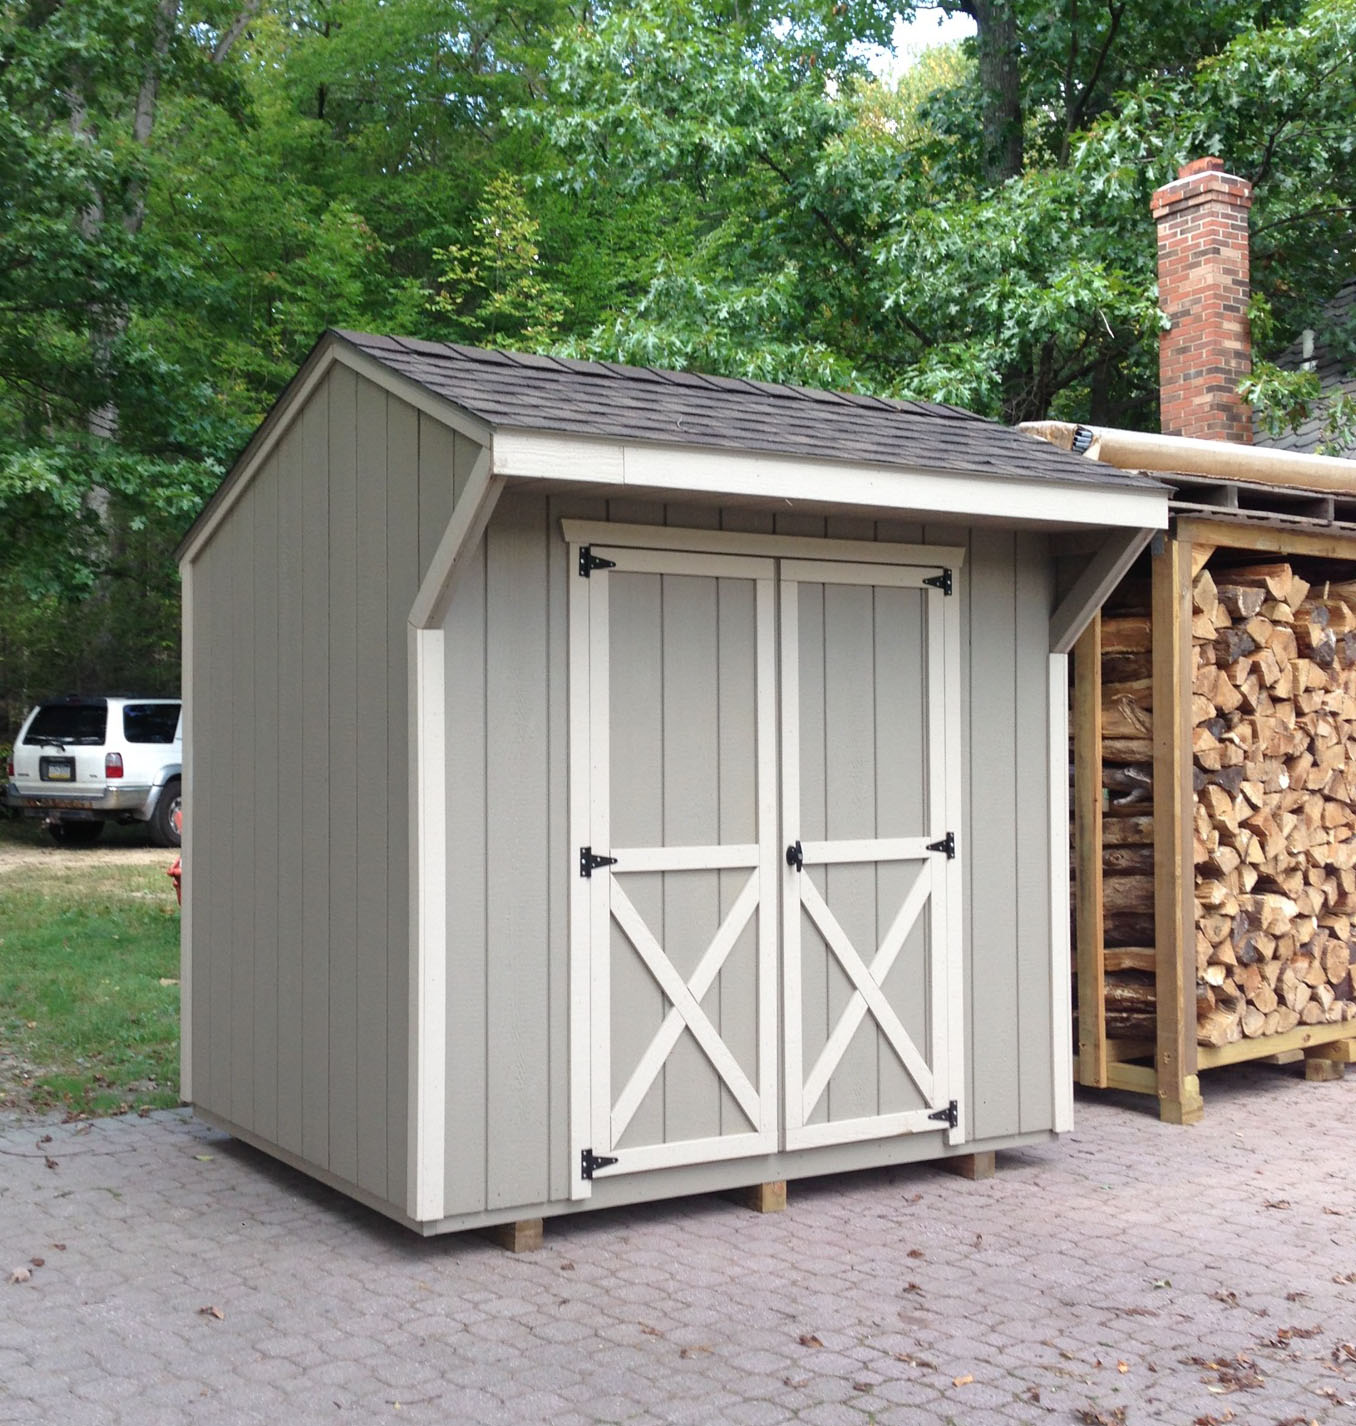 Good sheds hollidaysburg pa great storage for Cheap large sheds